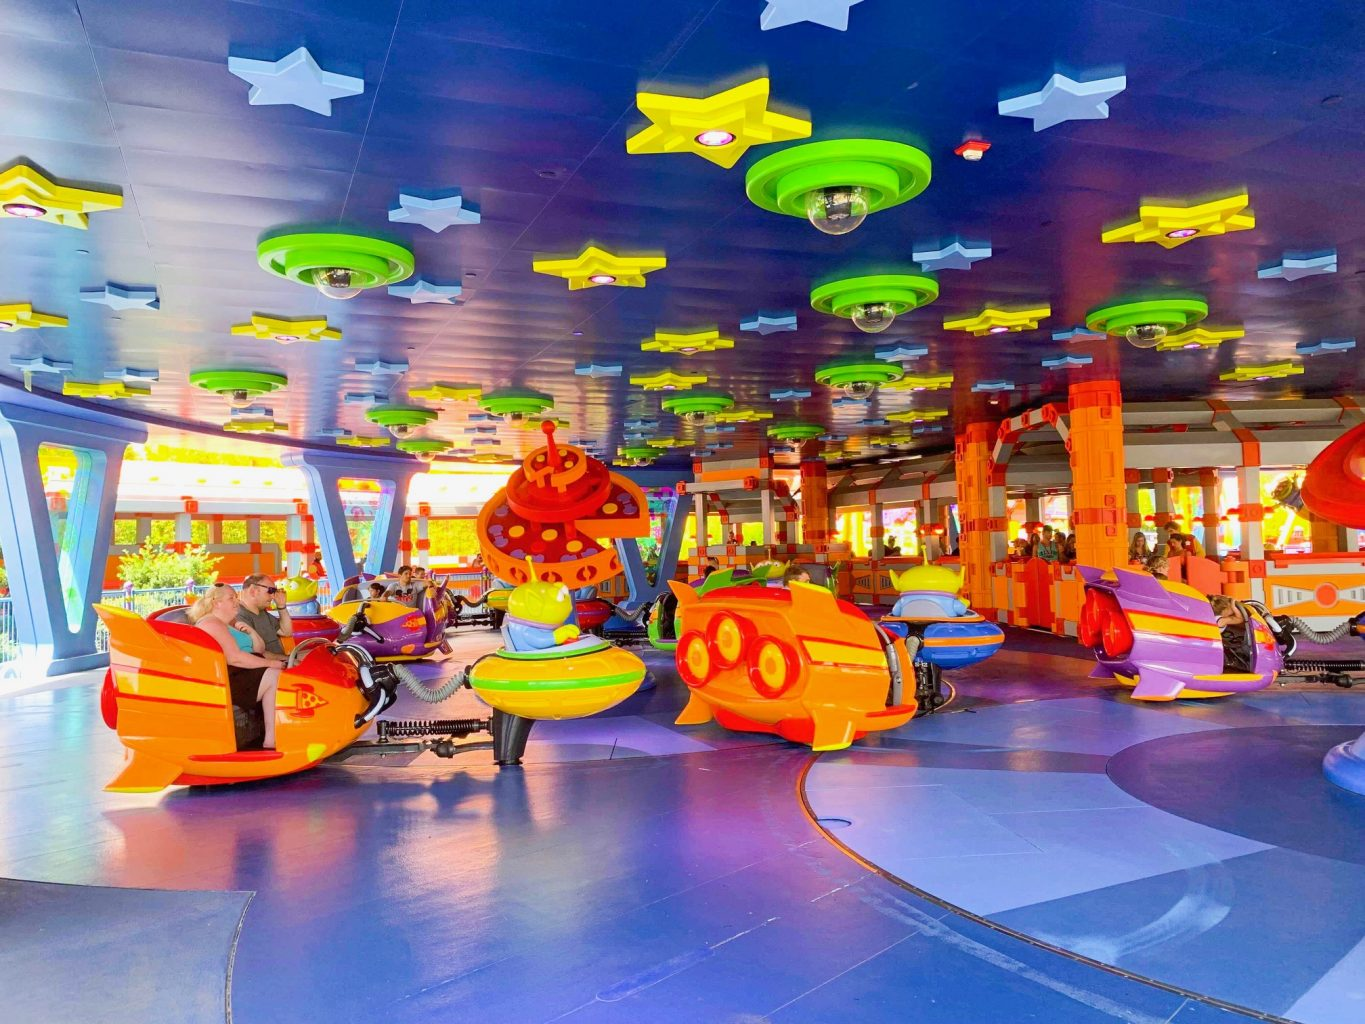 Hollywood Studios Fastpass Interior of Alien Saucers in Toy Story Land